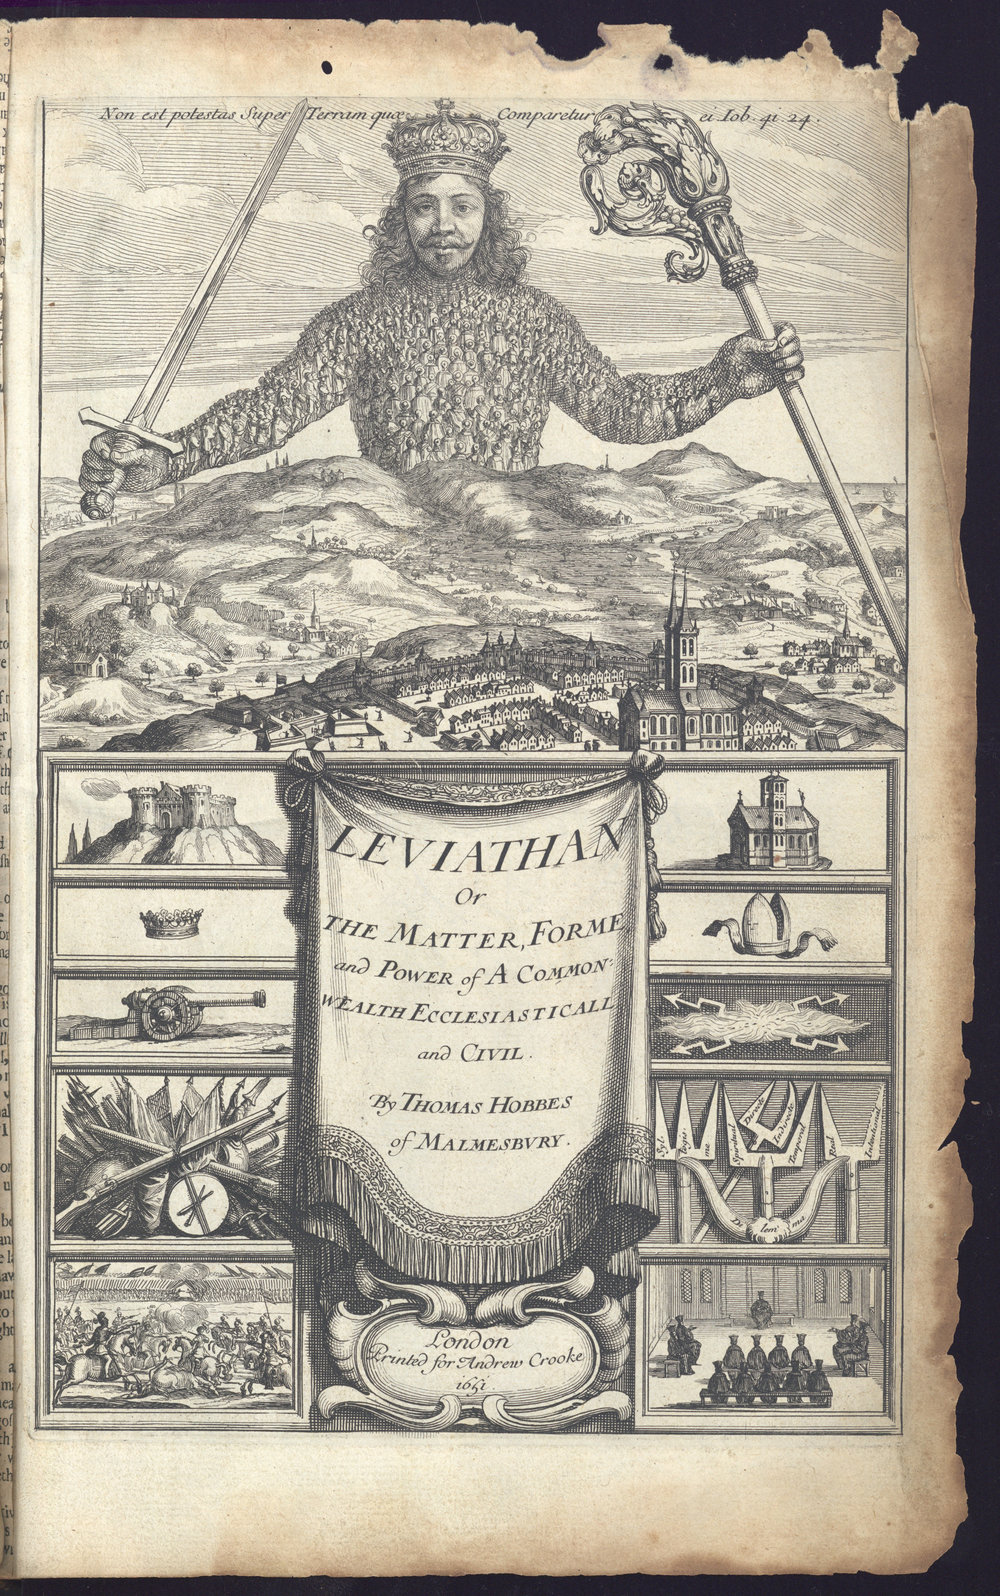 Frontispiece to Thomas Hobbes,  Leviathan  with its image depicting the state literally representing or embodying the population. Reproduced with permission from Robinson Library, Newcastle University. Special Collections, Bainbrigg (Bai 1651 HOB).